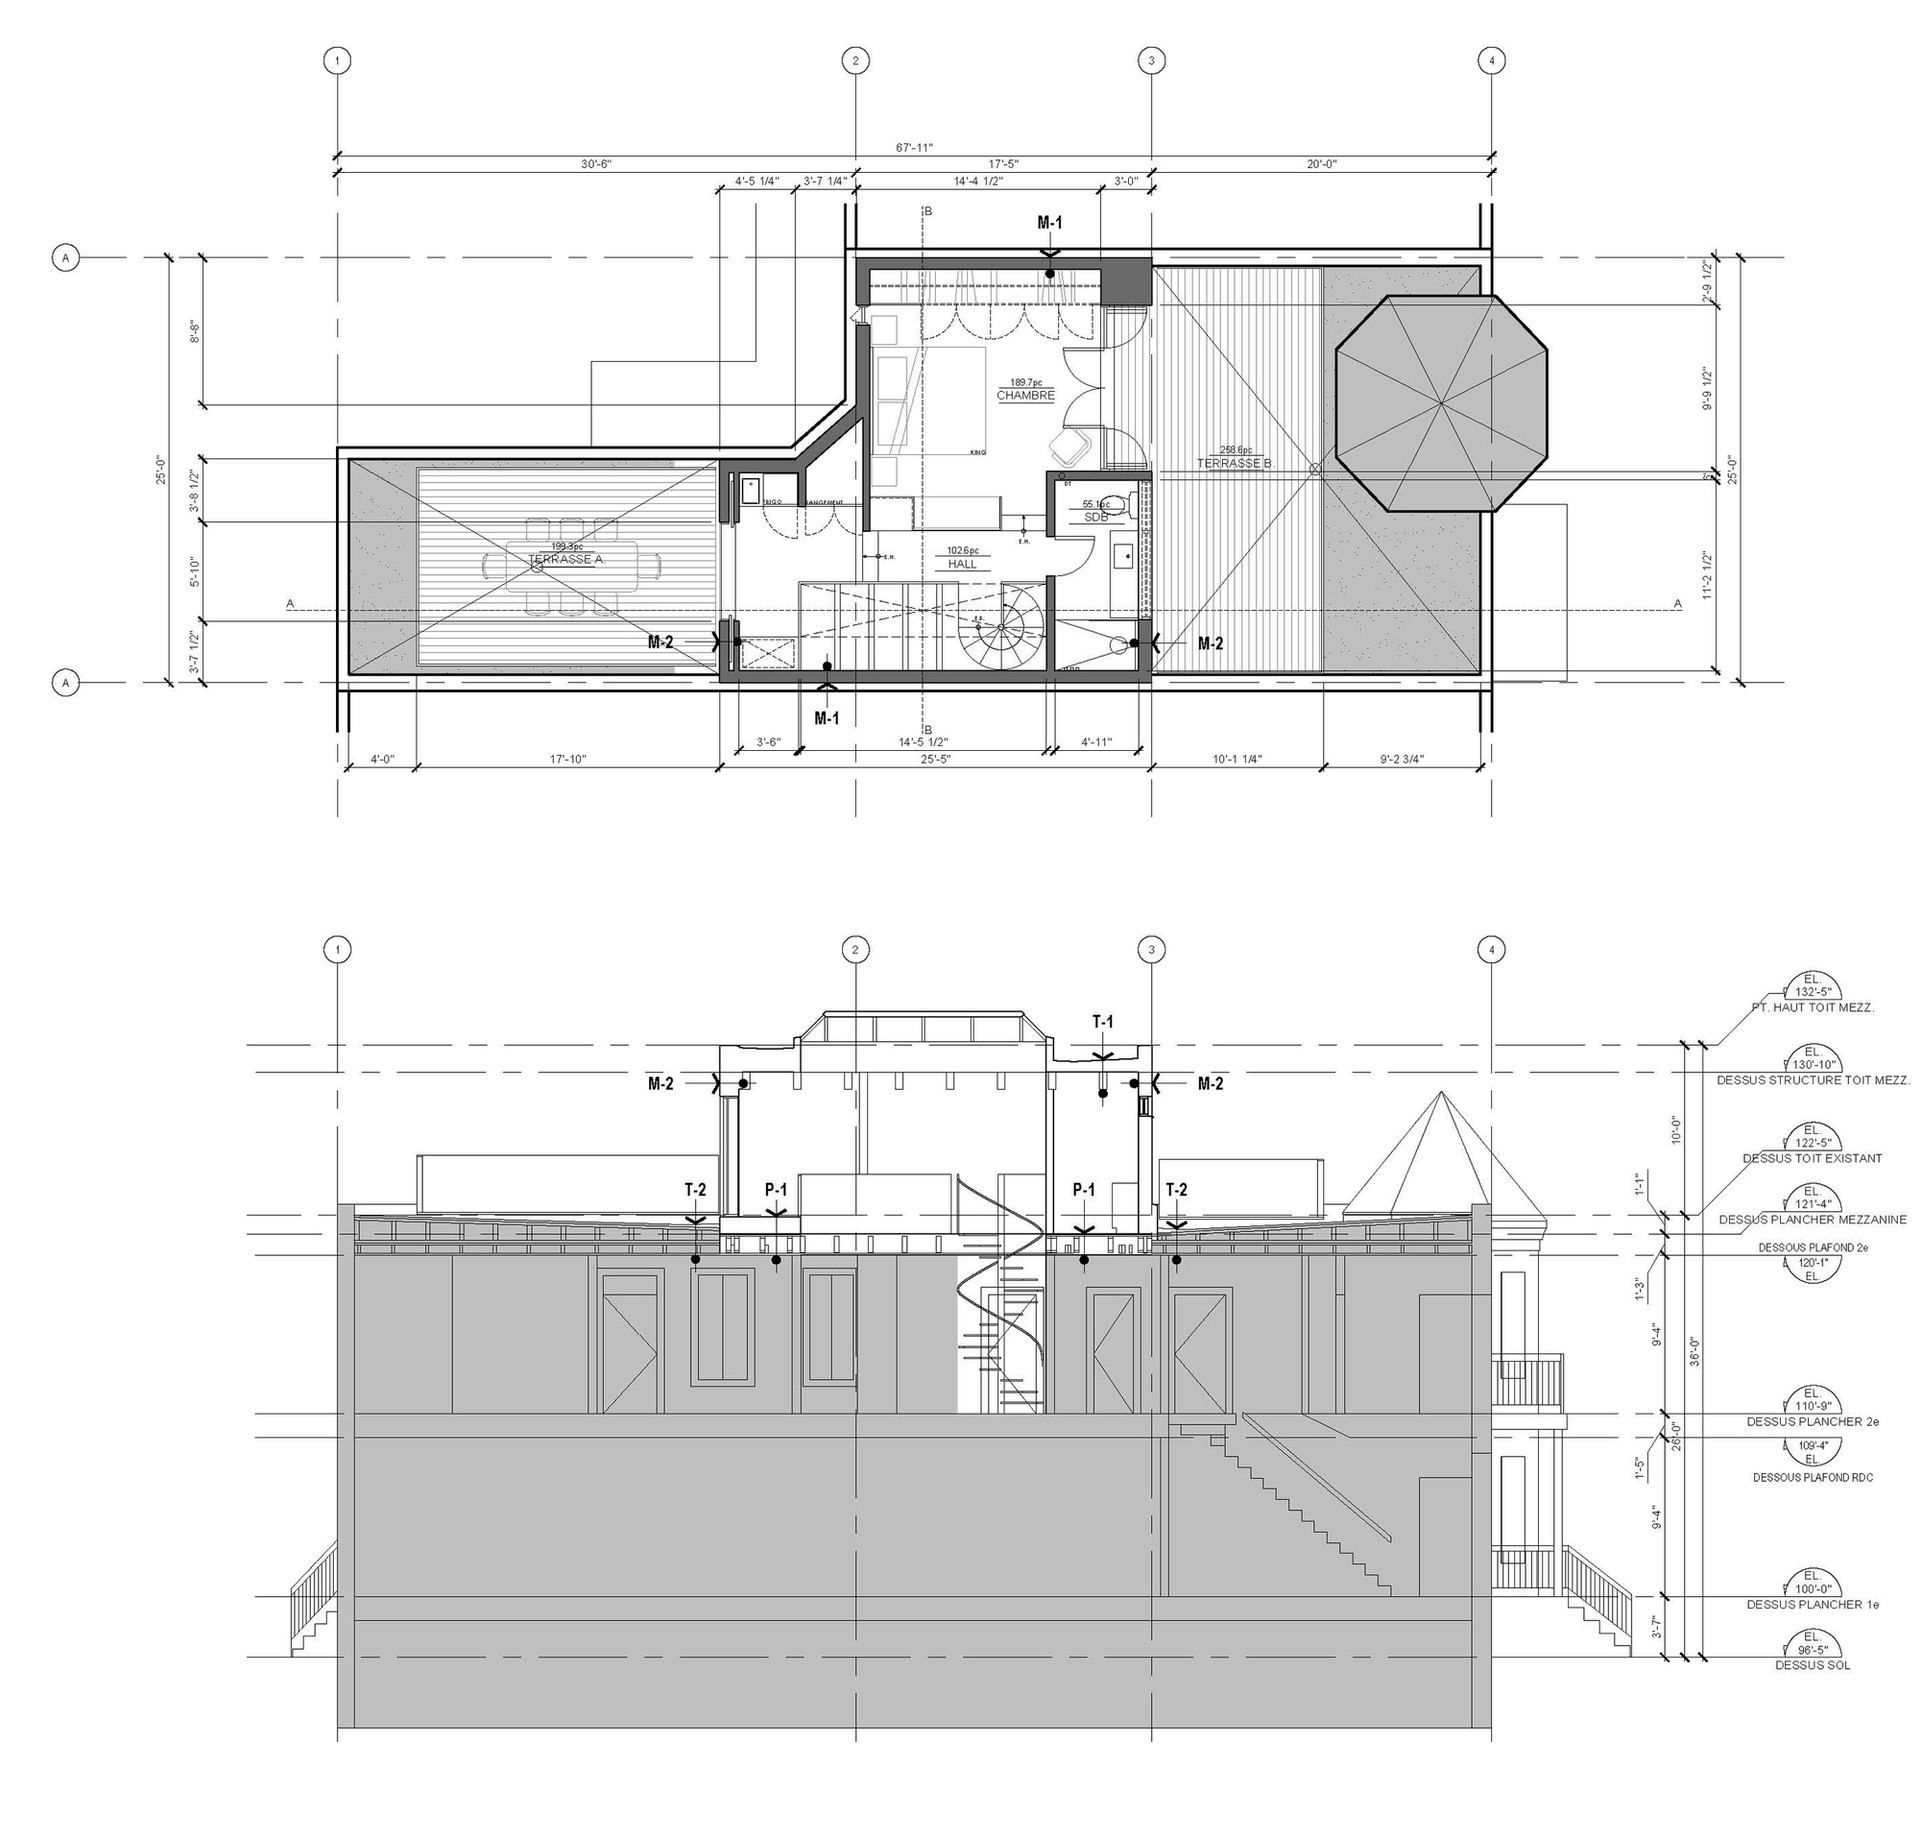 5686 Waverly architecture plan and secti